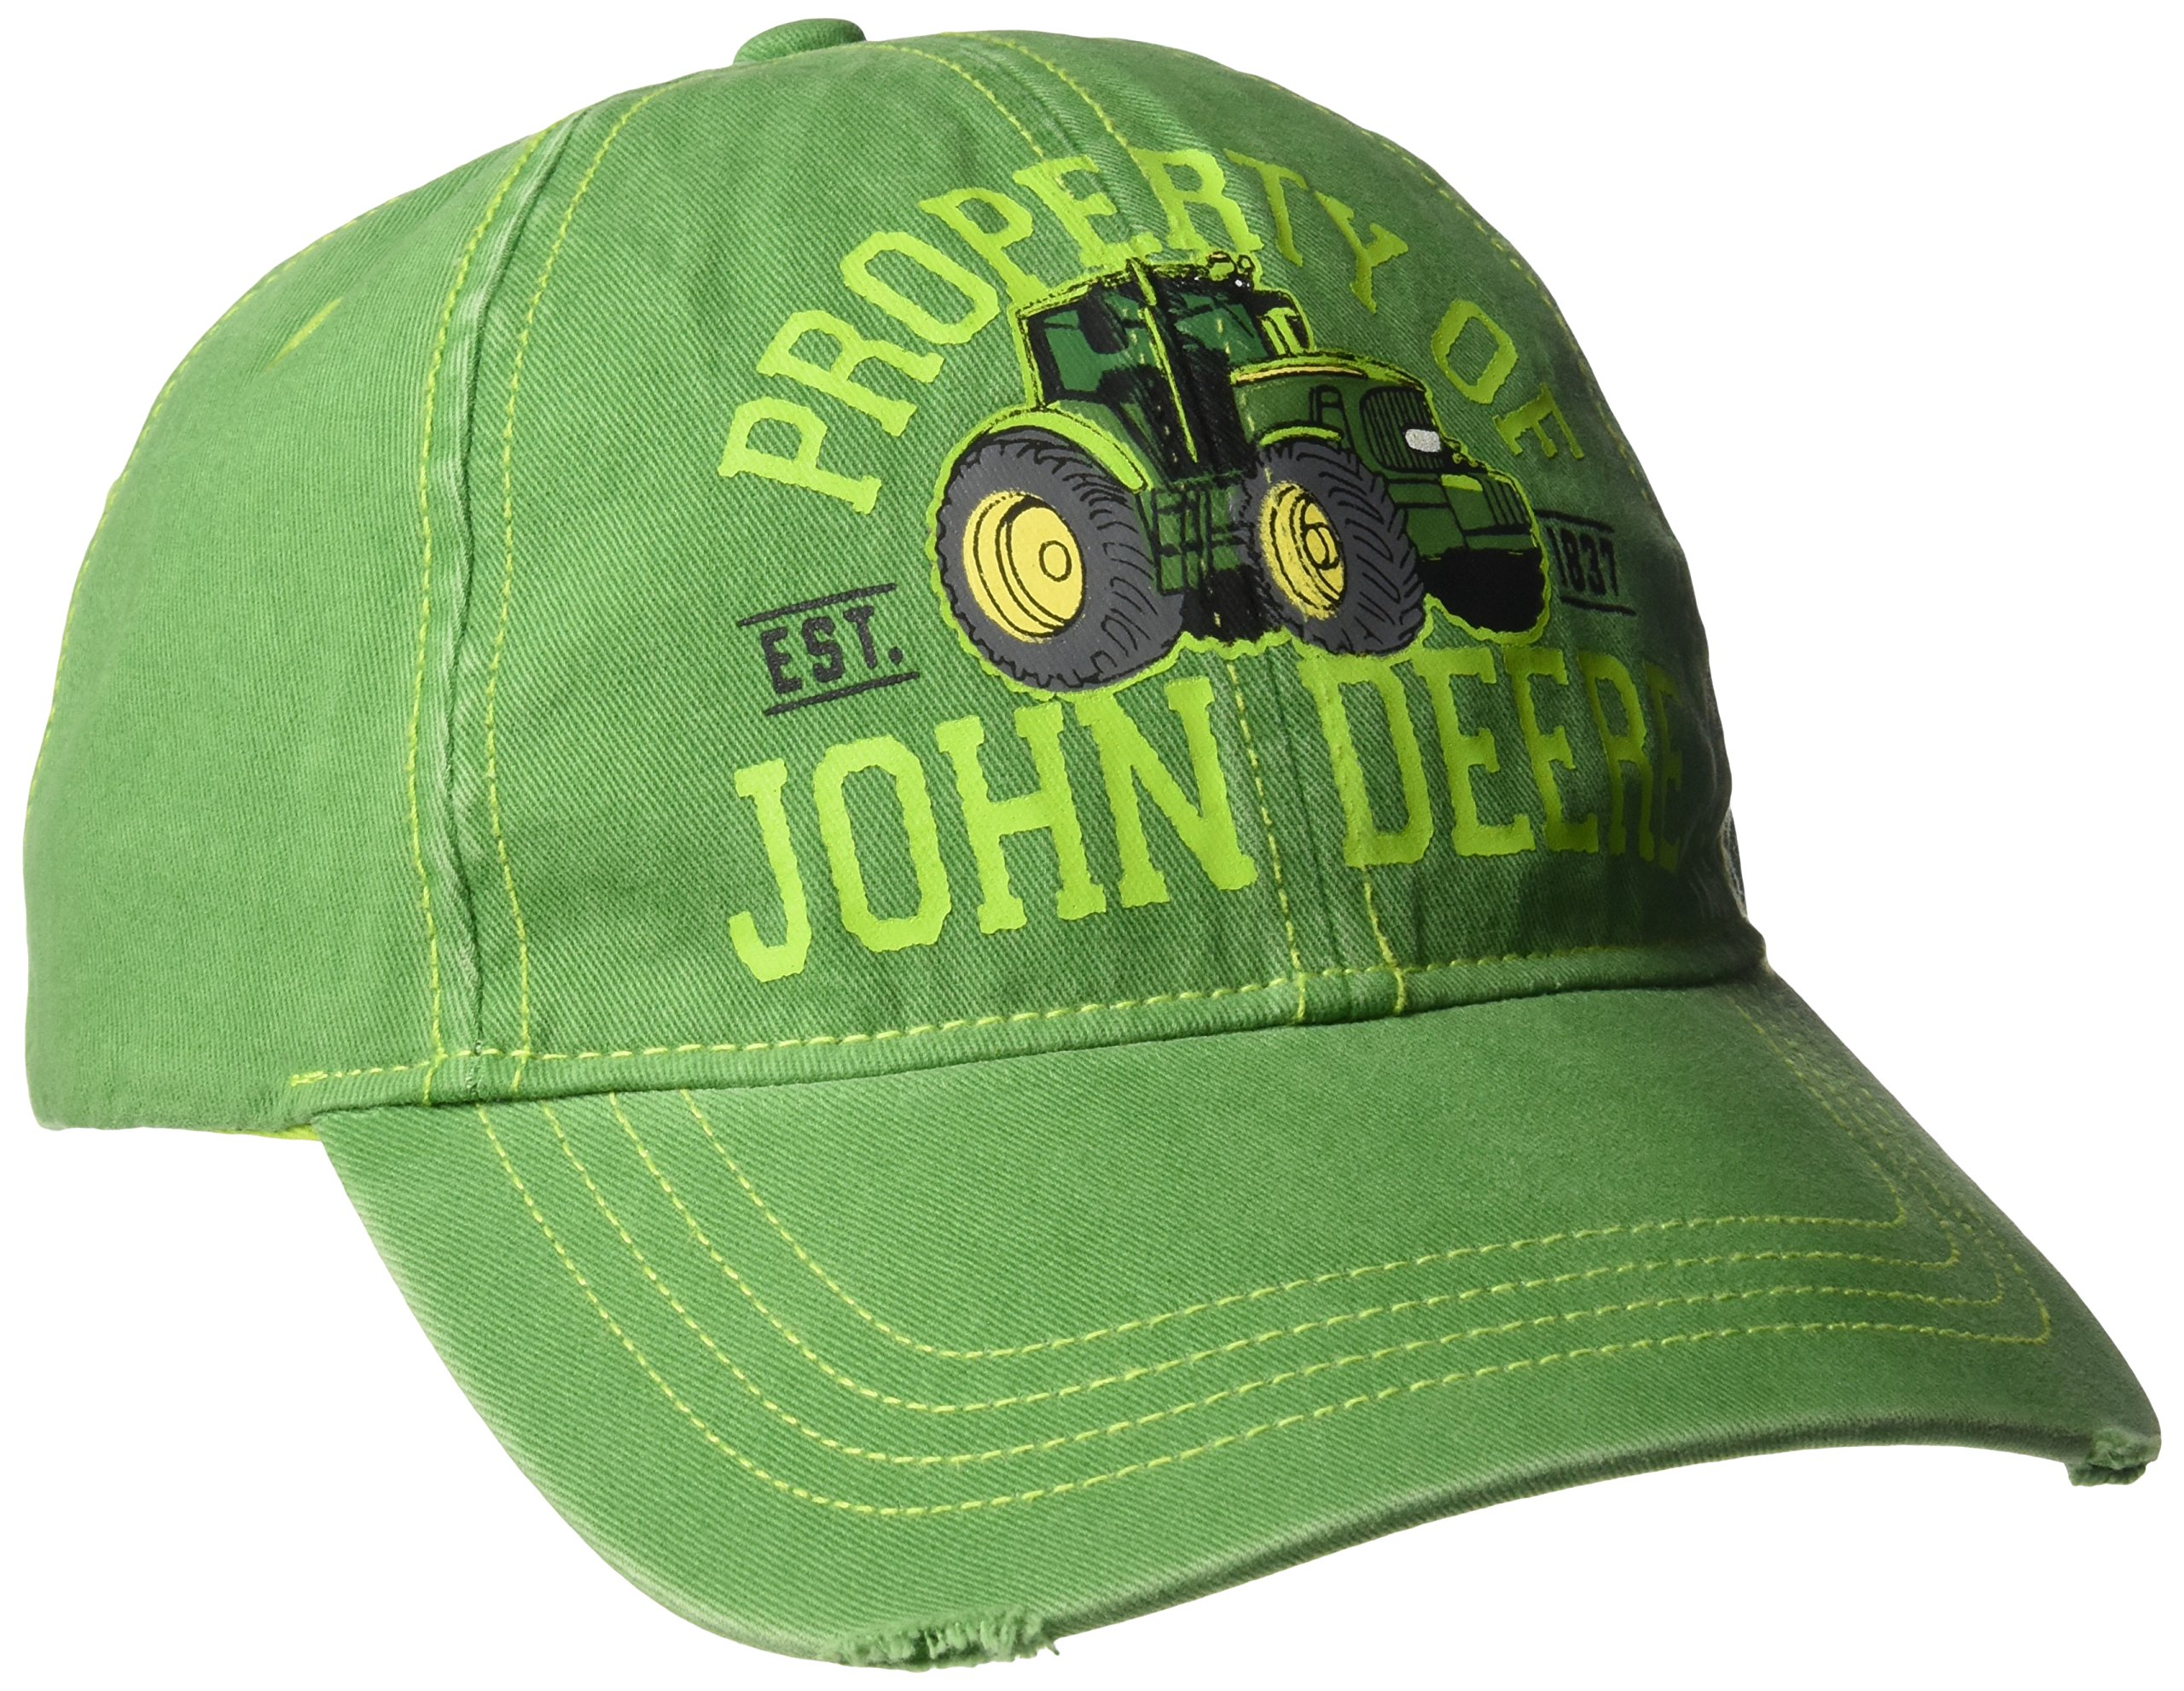 John Deere Big Boys' Baseball Cap, Green, Youth